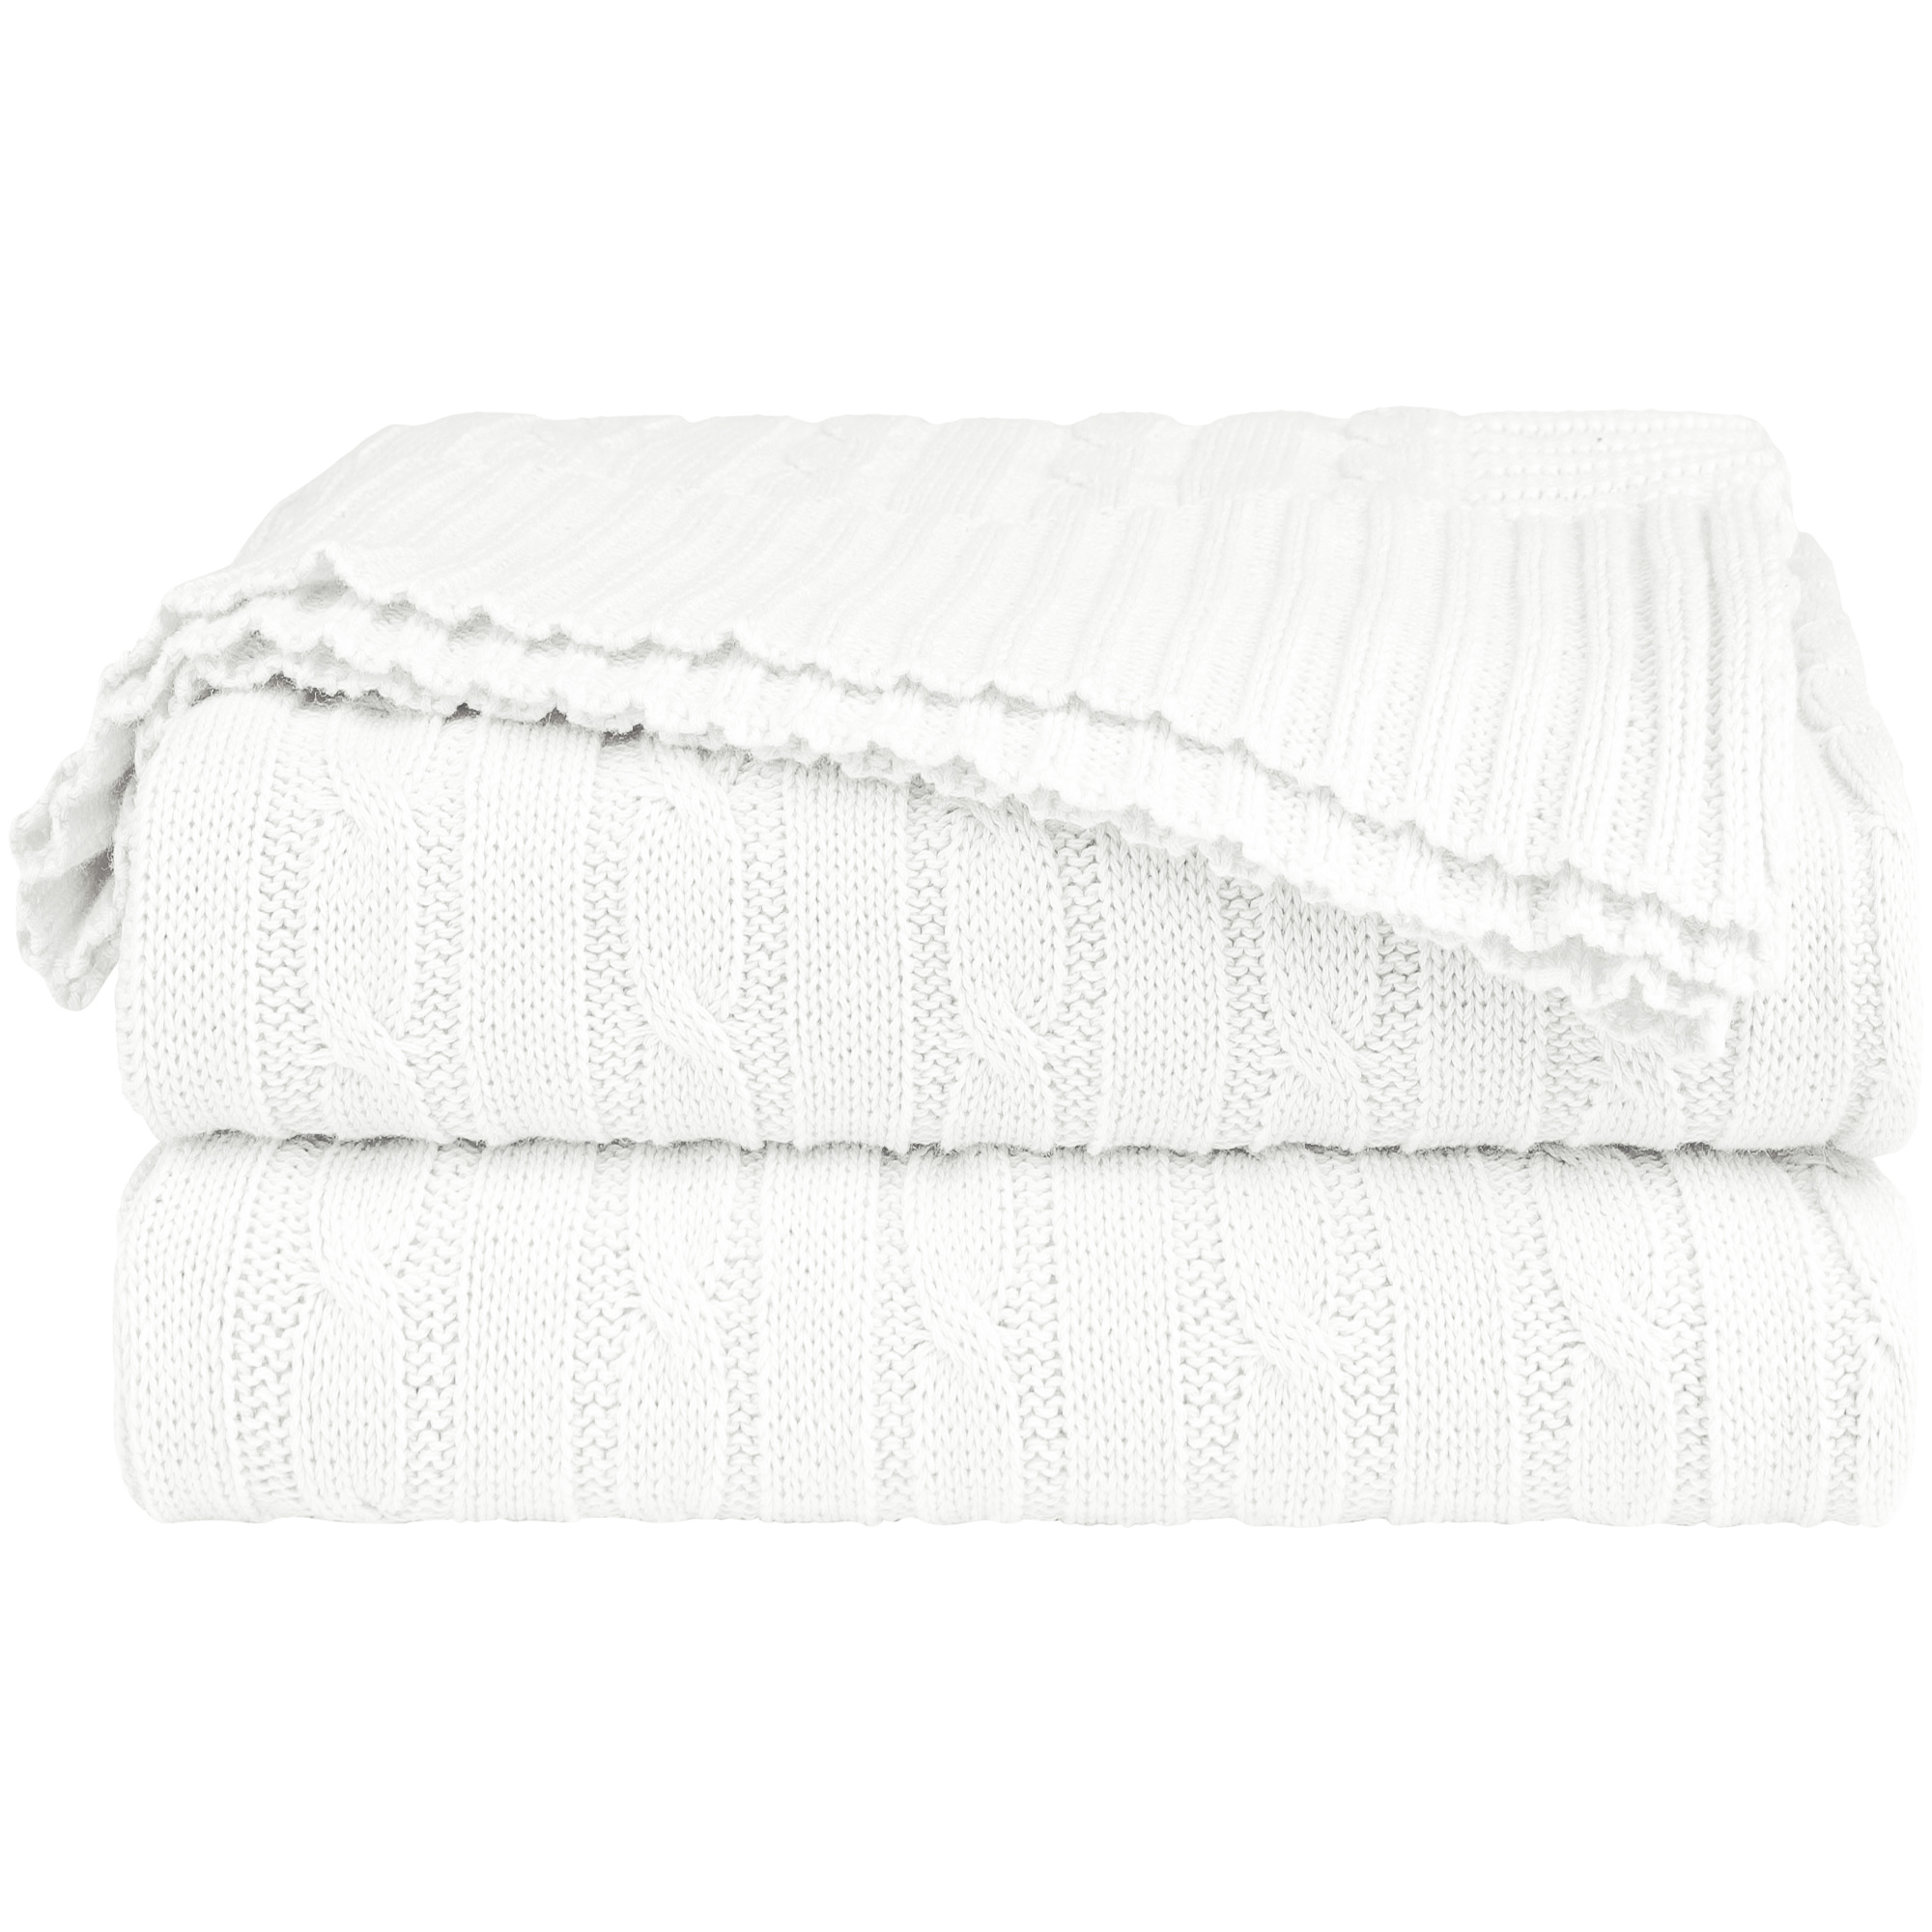 Home Decor 100% Cotton Soft Cable Knit Throw Blanket White